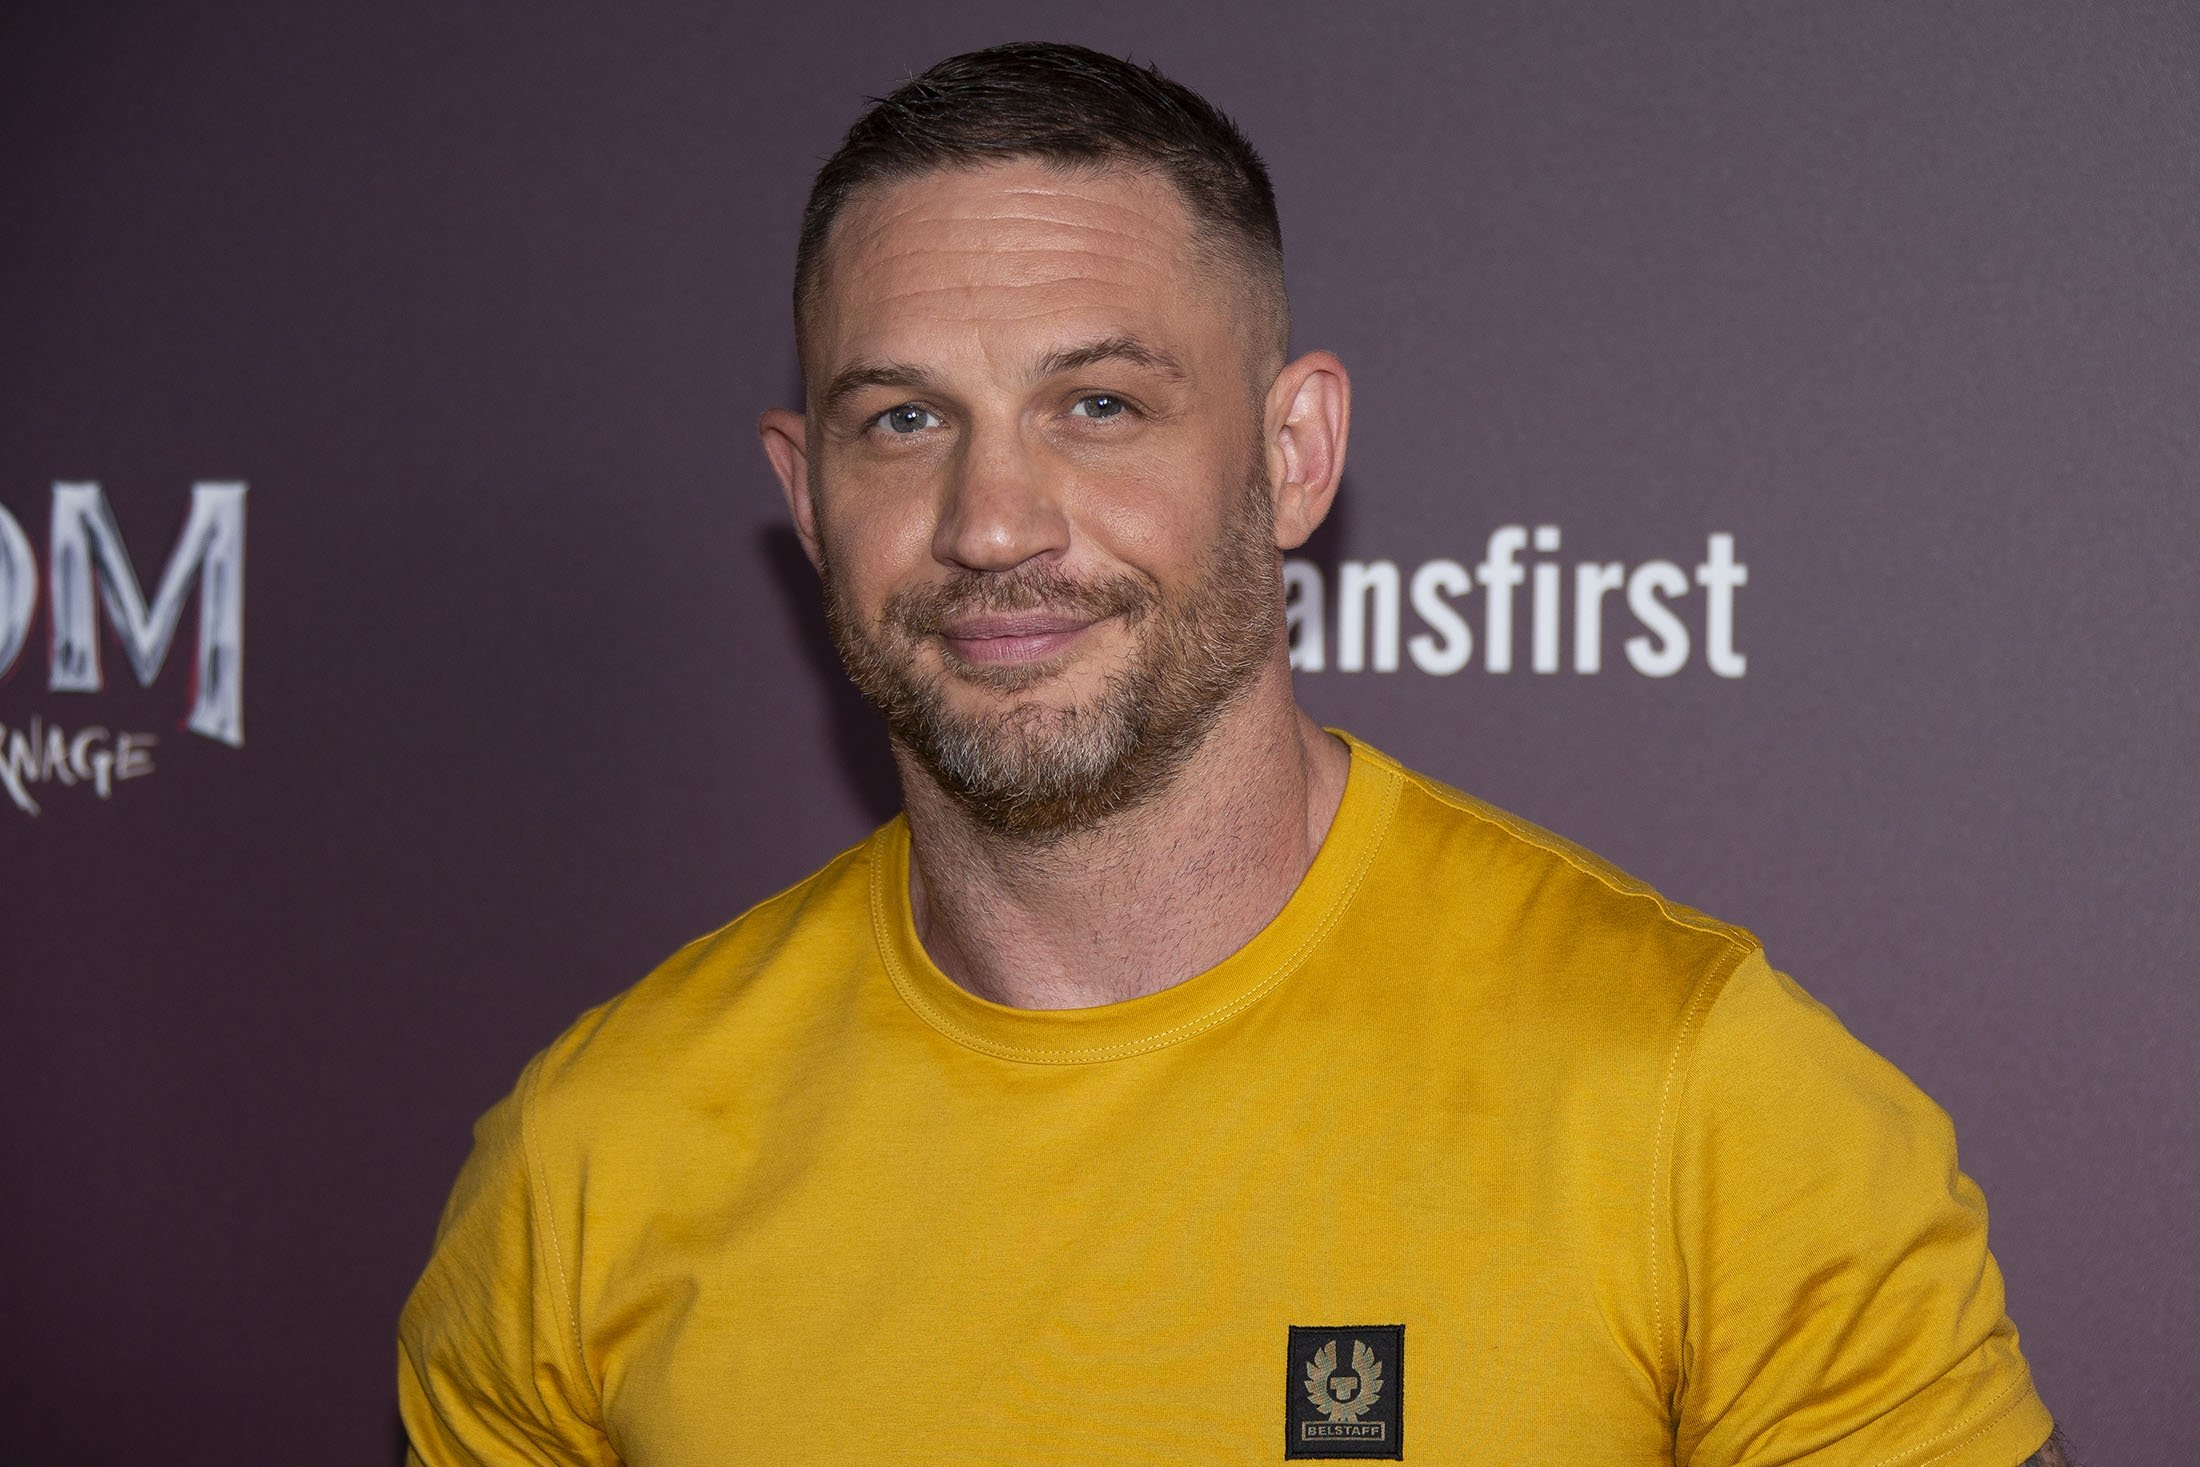 Tom Hardy poses for photographers during a photo call for his film 'Venom: Let There Be Carnage,' ahead of a screening at a central London cinema, in London, U.K., Sept. 14, 2021. (AP Photo)